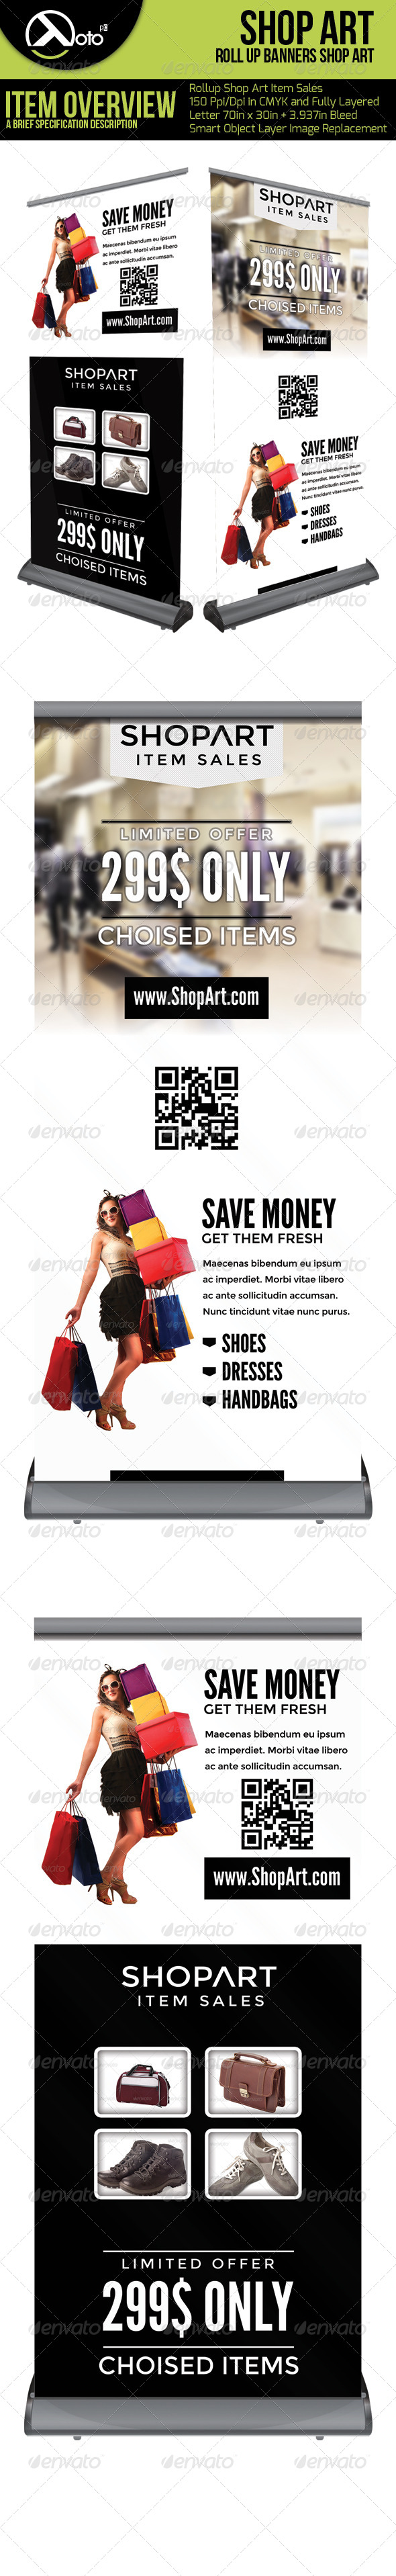 Shop Art Roll Up Banners - Signage Print Templates